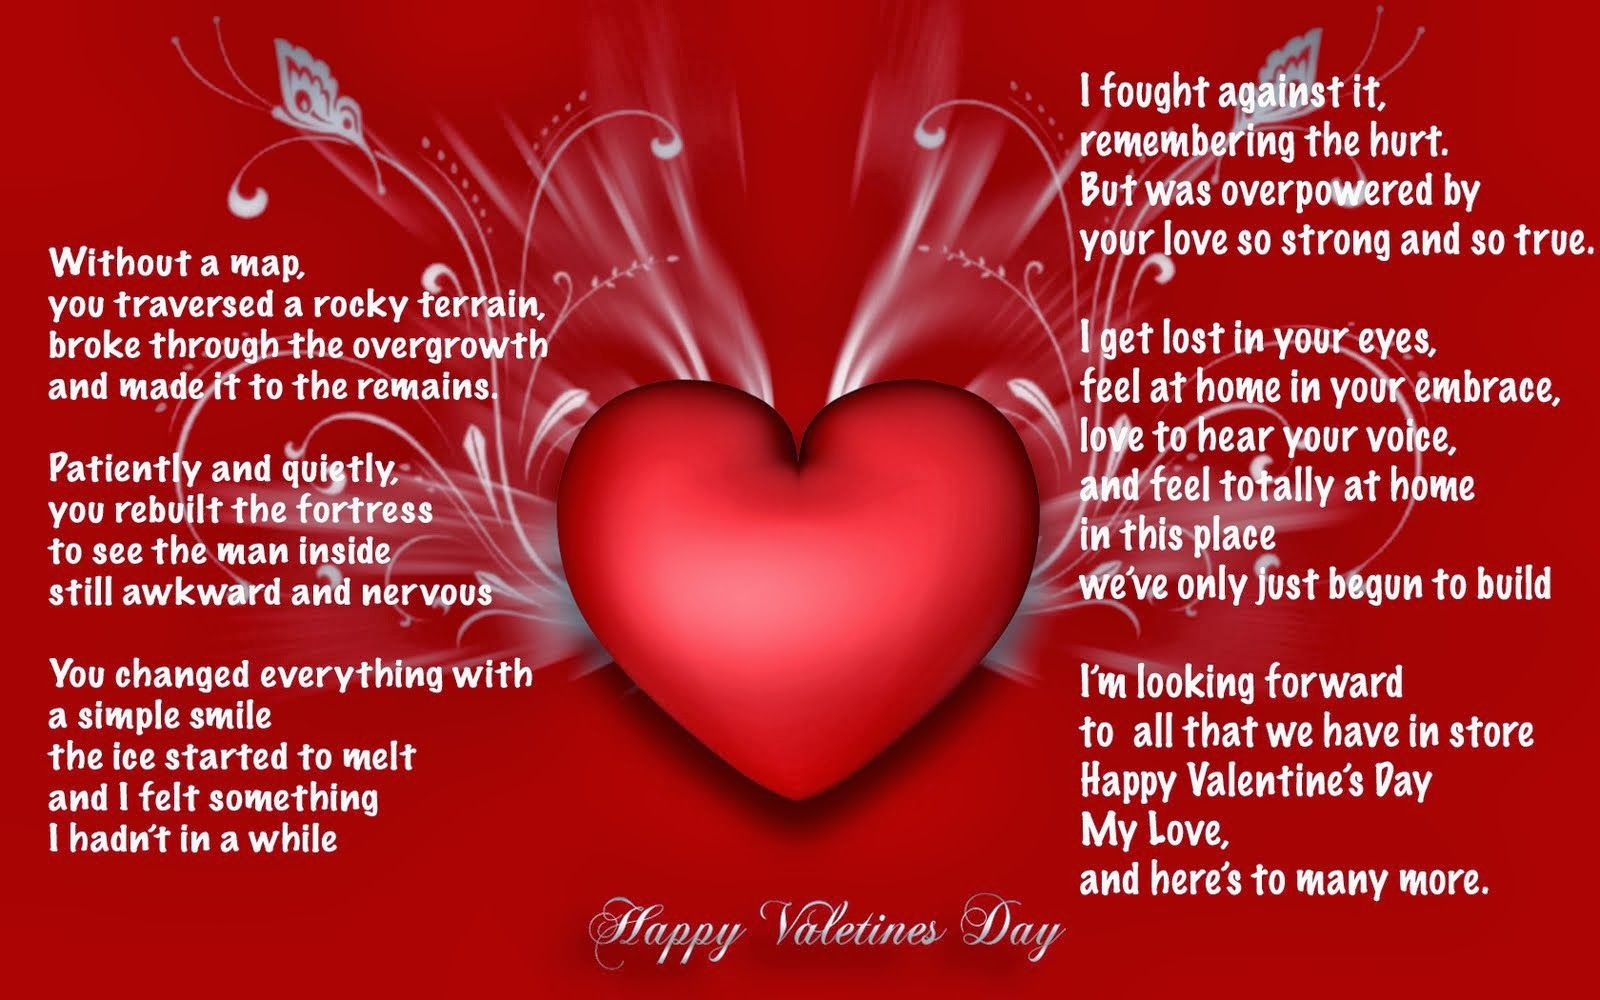 valentines day sayings quotes cheesy cute funny 2014 – Funny Sayings for Valentines Cards